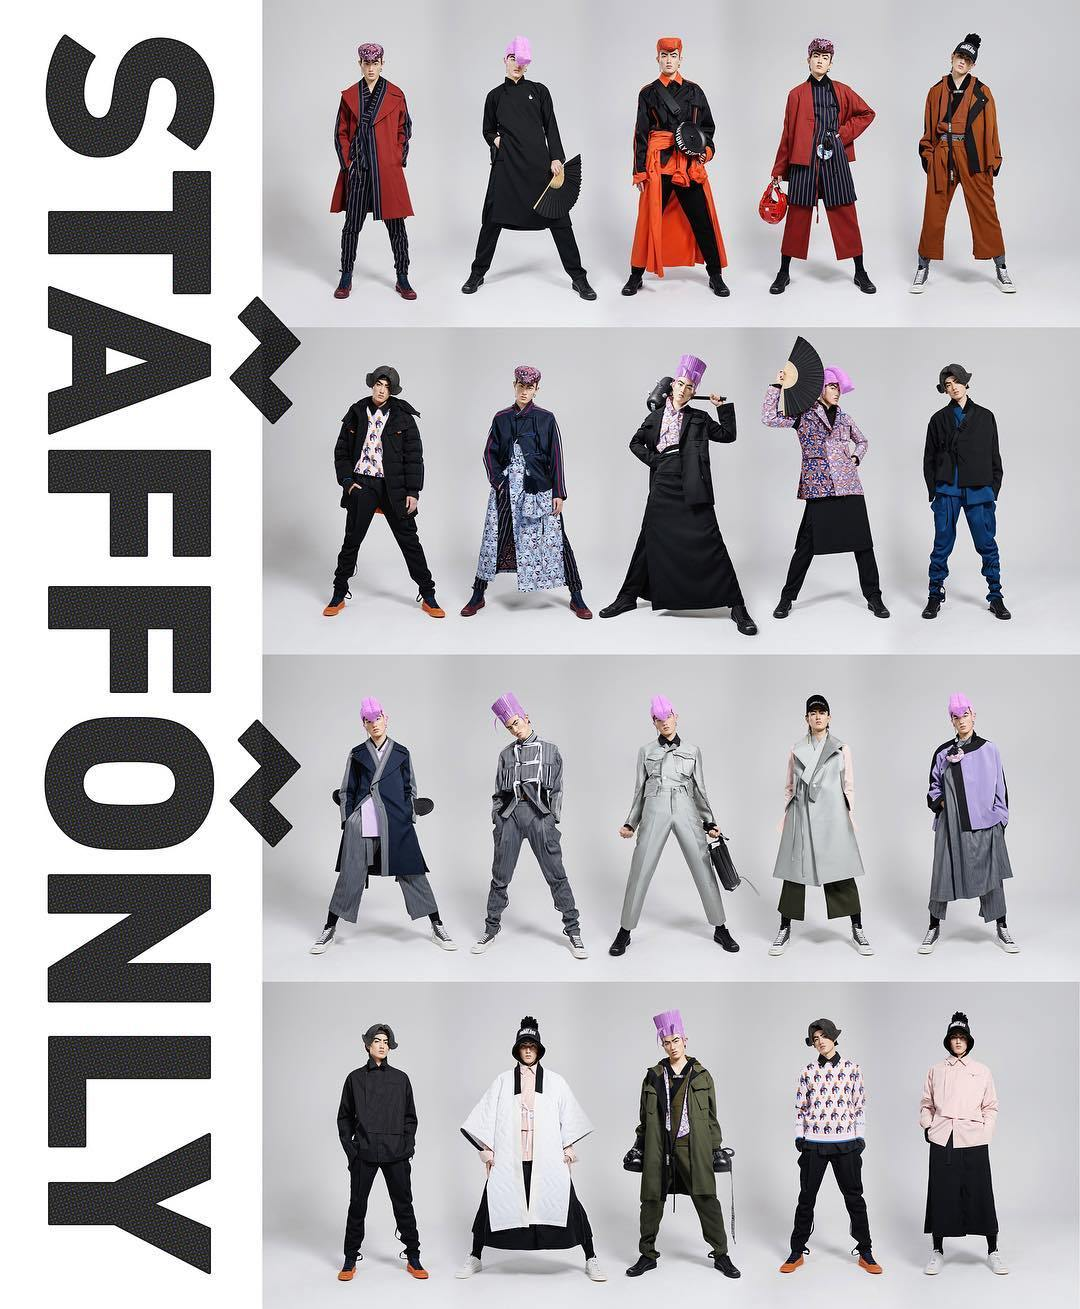 Staff Only Studio: STAY ALERT / STAY ALIVE. SEASON 5 - AUTUMN WINTER 2018. Now available in stores! (IG: @staffonlystudio)